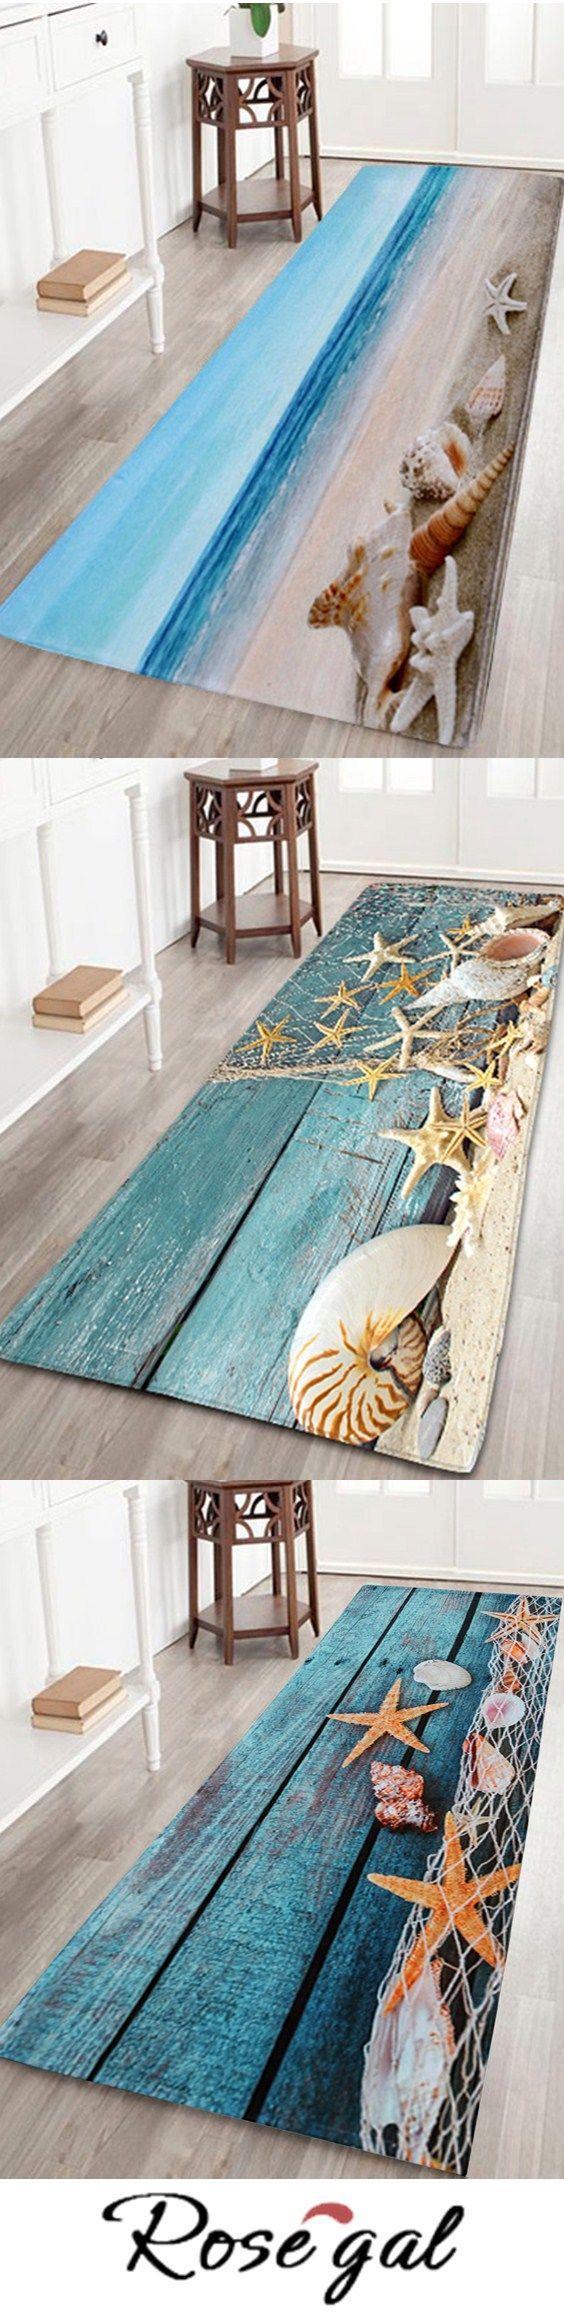 Up to 70% off. Free shipping worldwide. Home decor-the beach style of bathrug.home ideas,bathroom,bedroom ideas,home decor.#bathrug #homedecor #rosegal